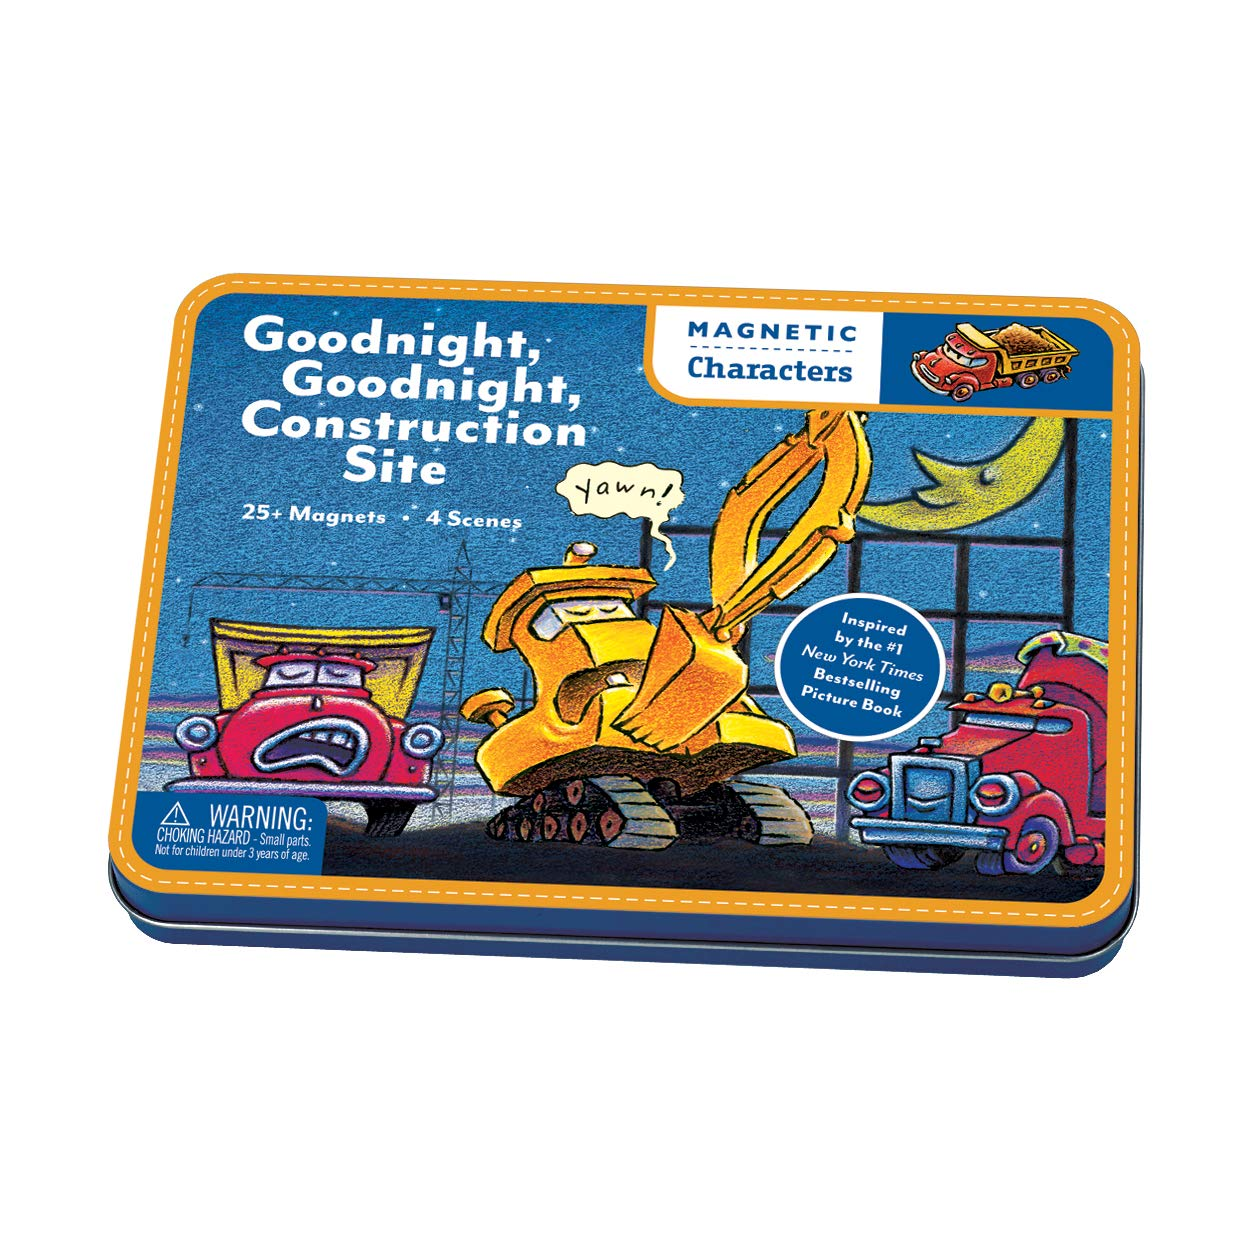 Goodnight, Goodnight Construction Site Magnetic Characters by Mudpuppy